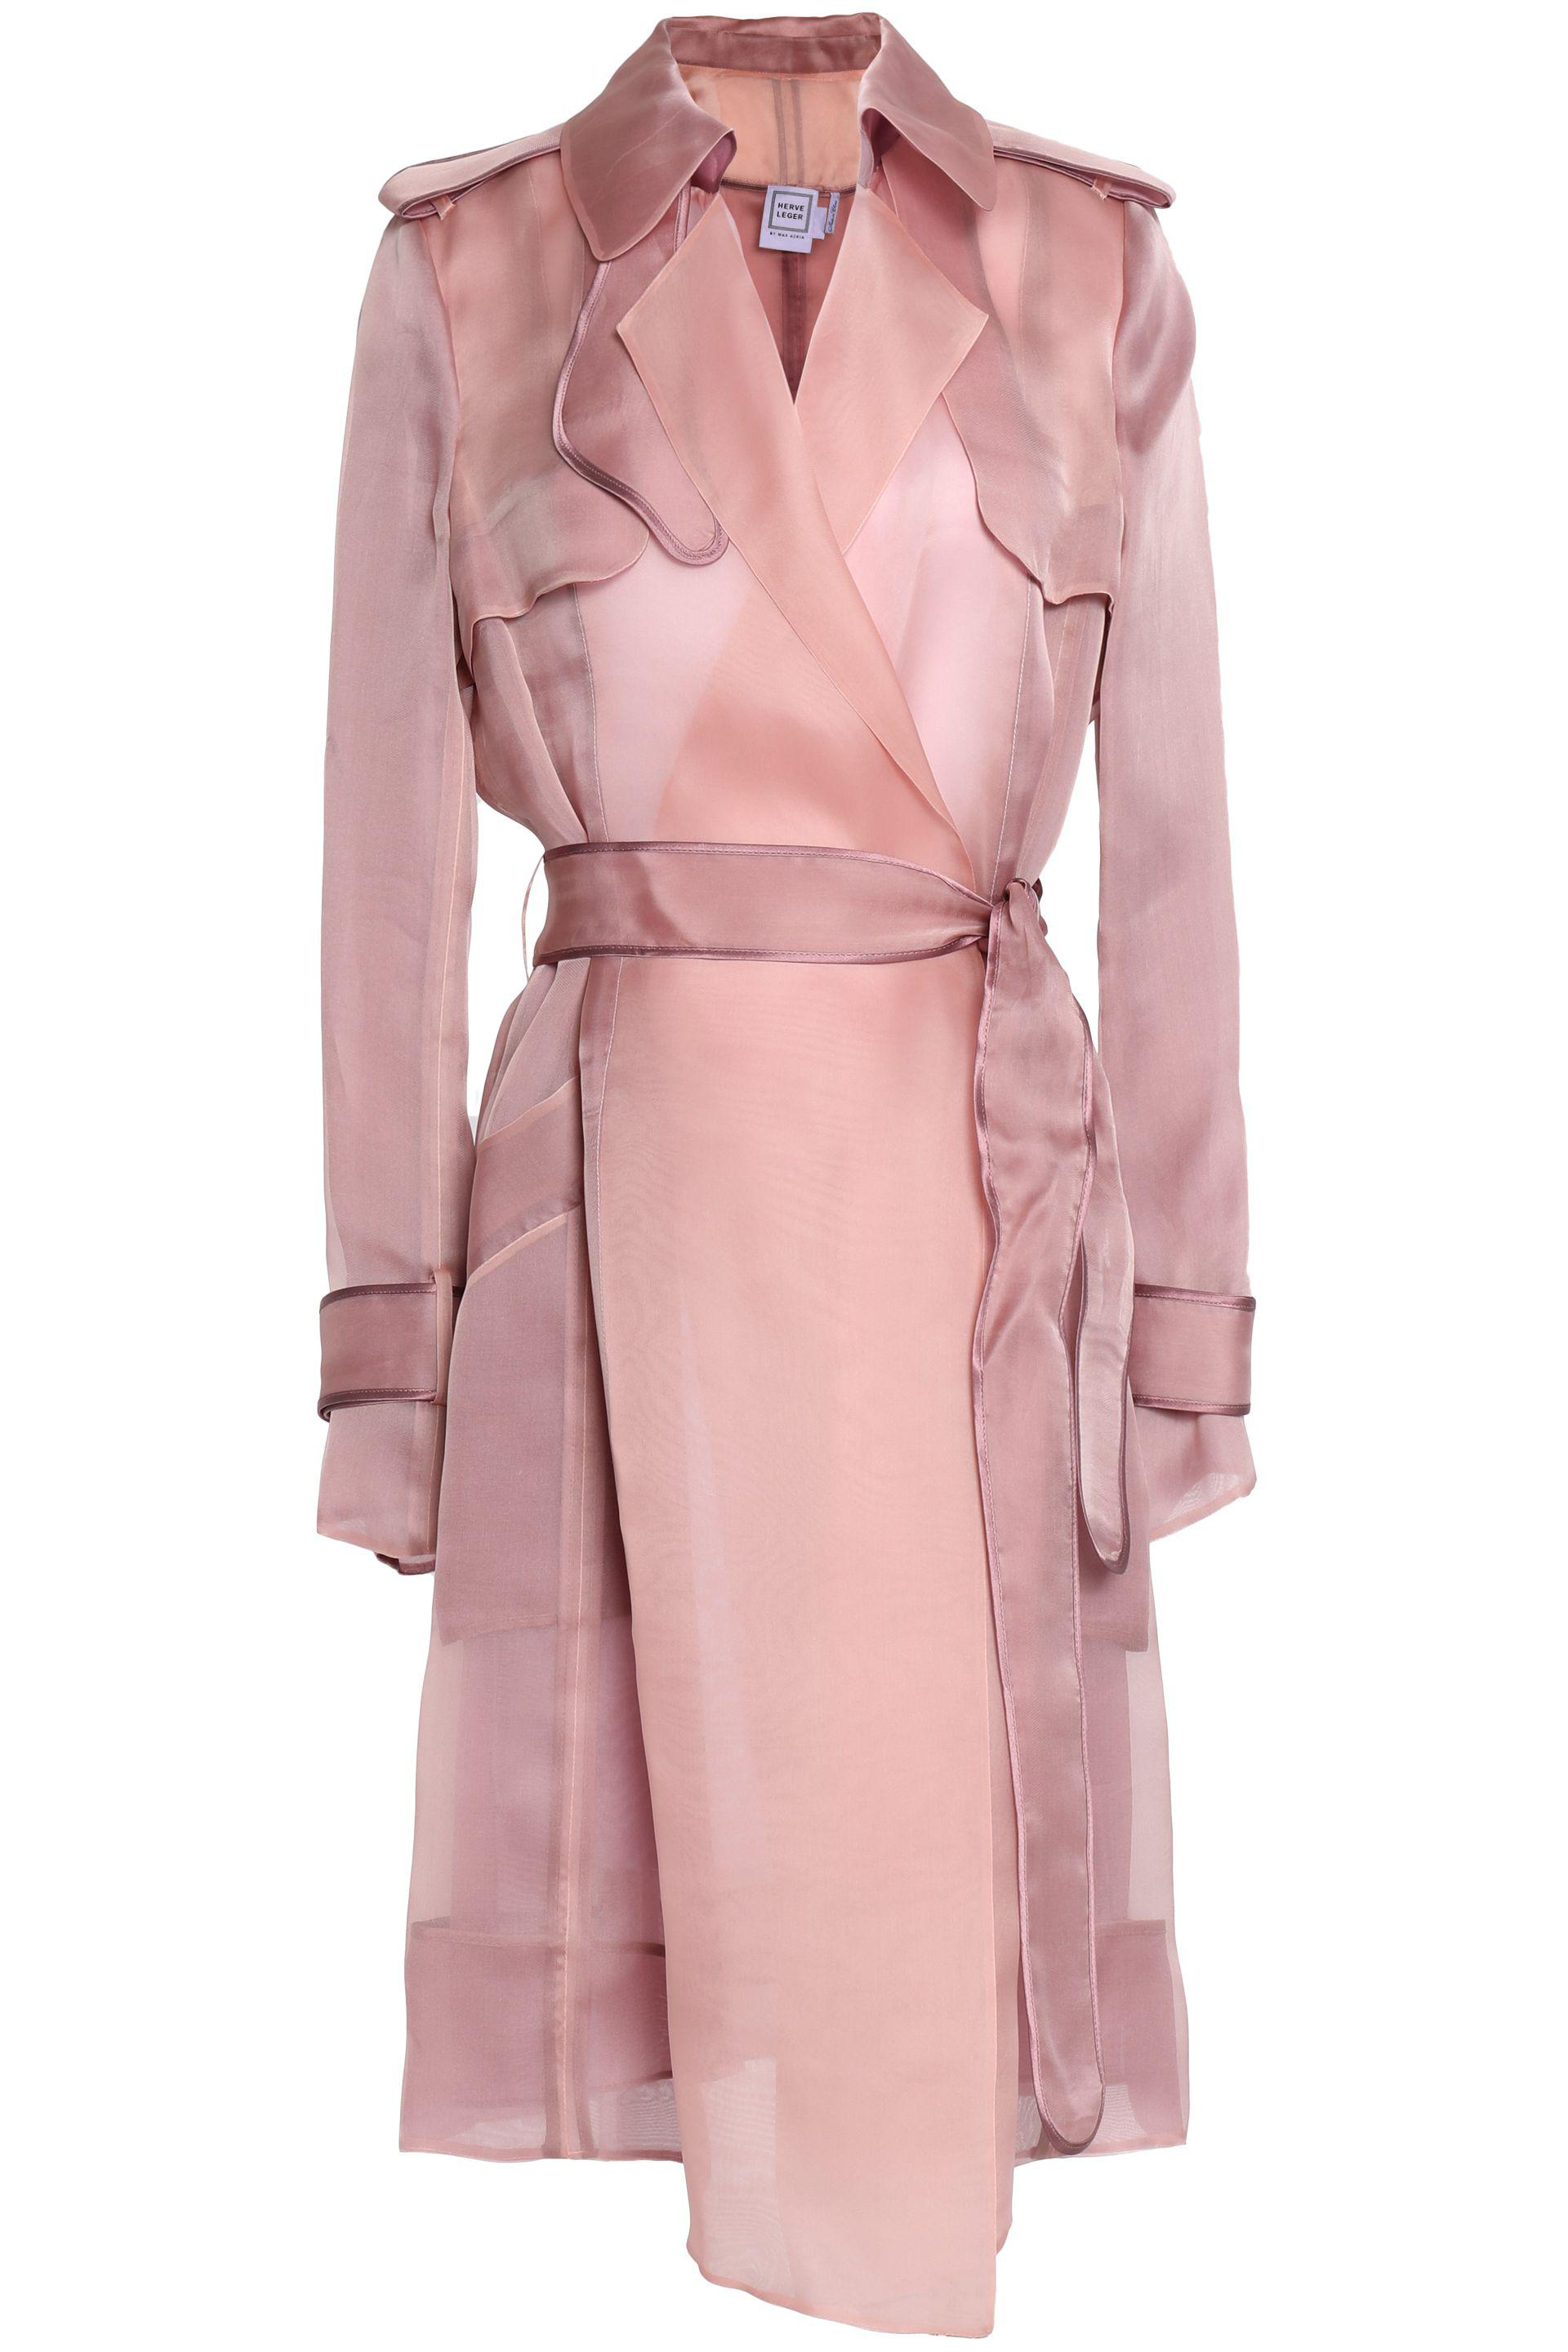 bcac23a09281 Hervé Léger Trench Coats Antique Rose in Pink - Lyst